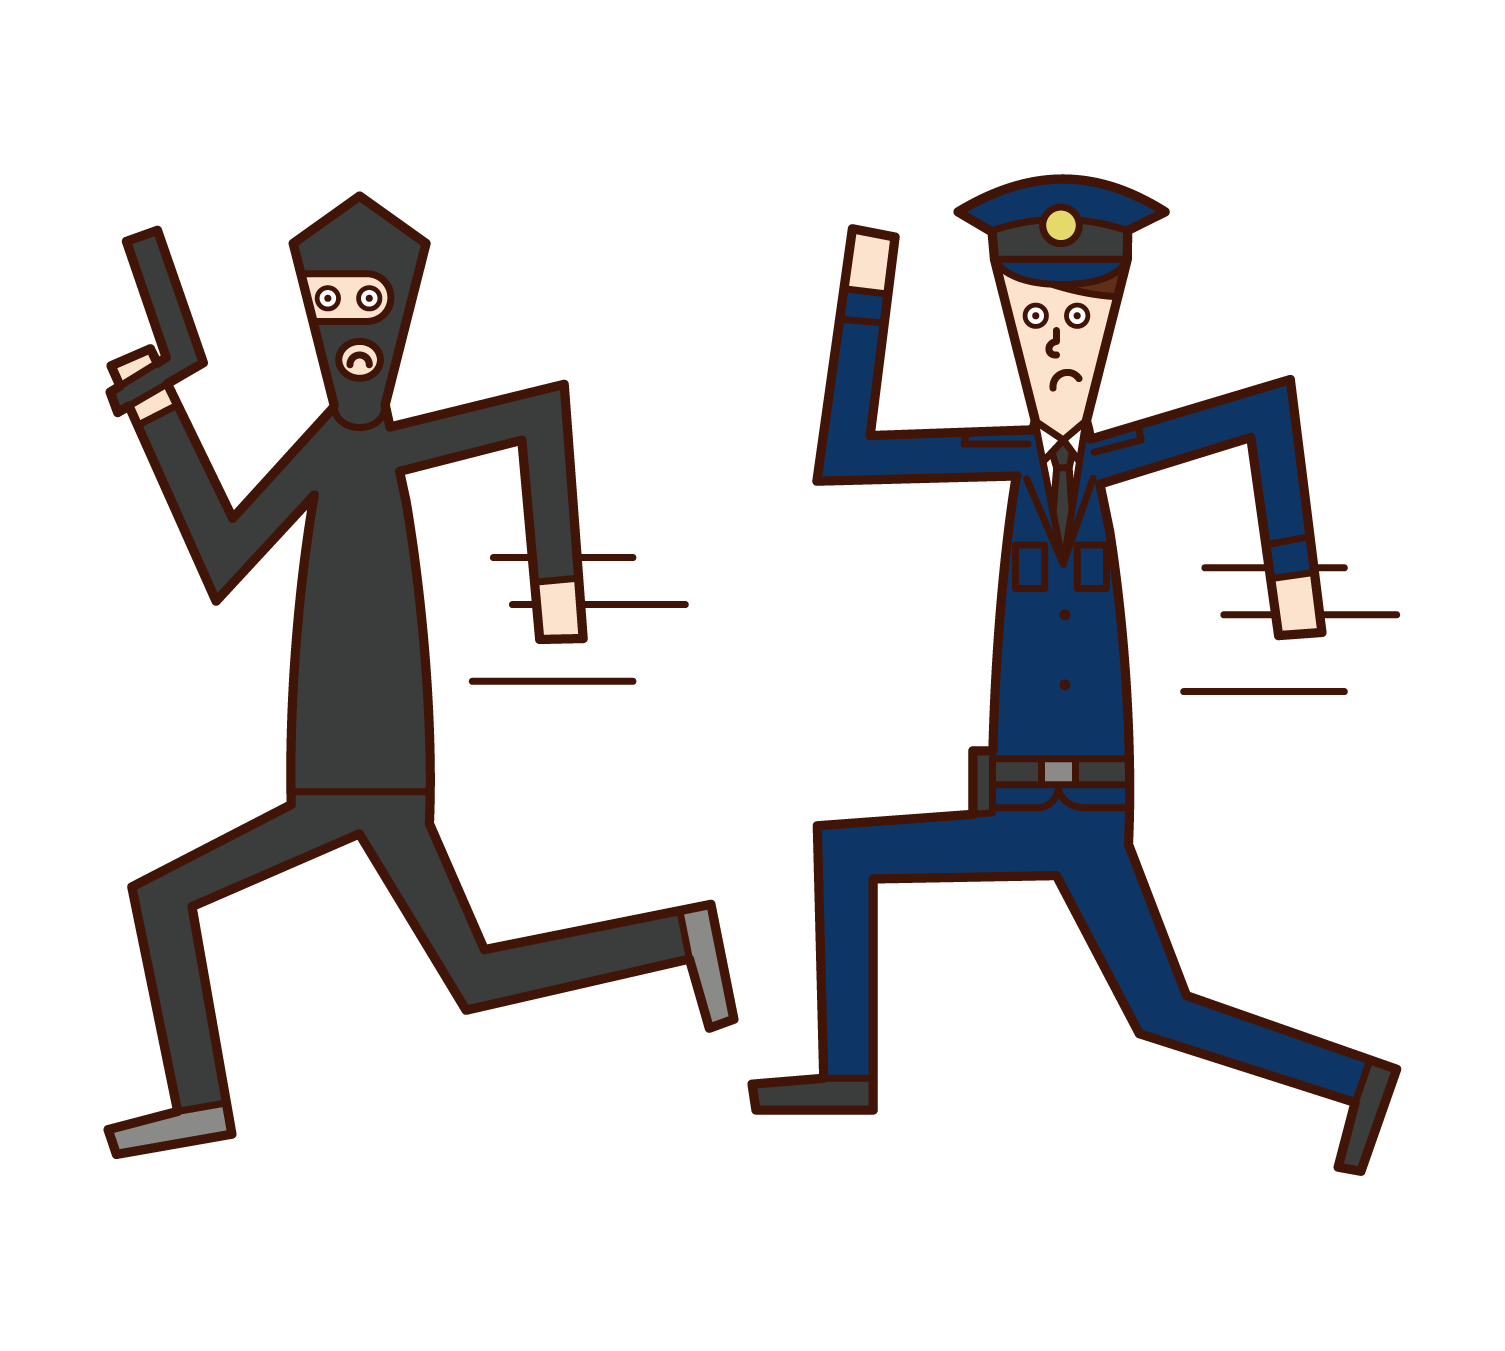 Illustration of a police officer (man) chasing a thief